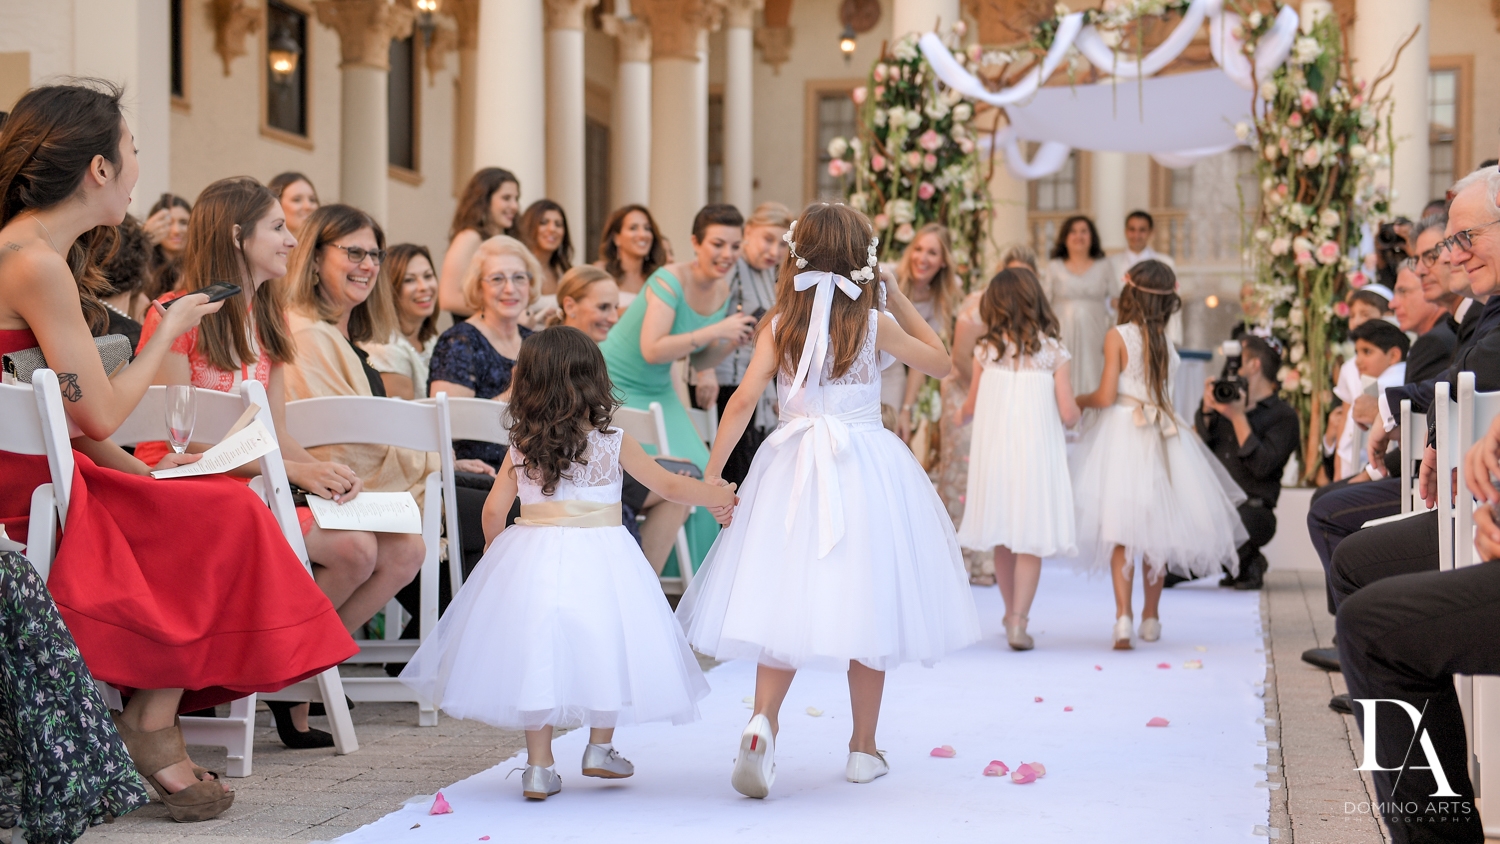 flowre girls at Modern Luxury Jewish Wedding Photography at Biltmore Miami Coral Gables